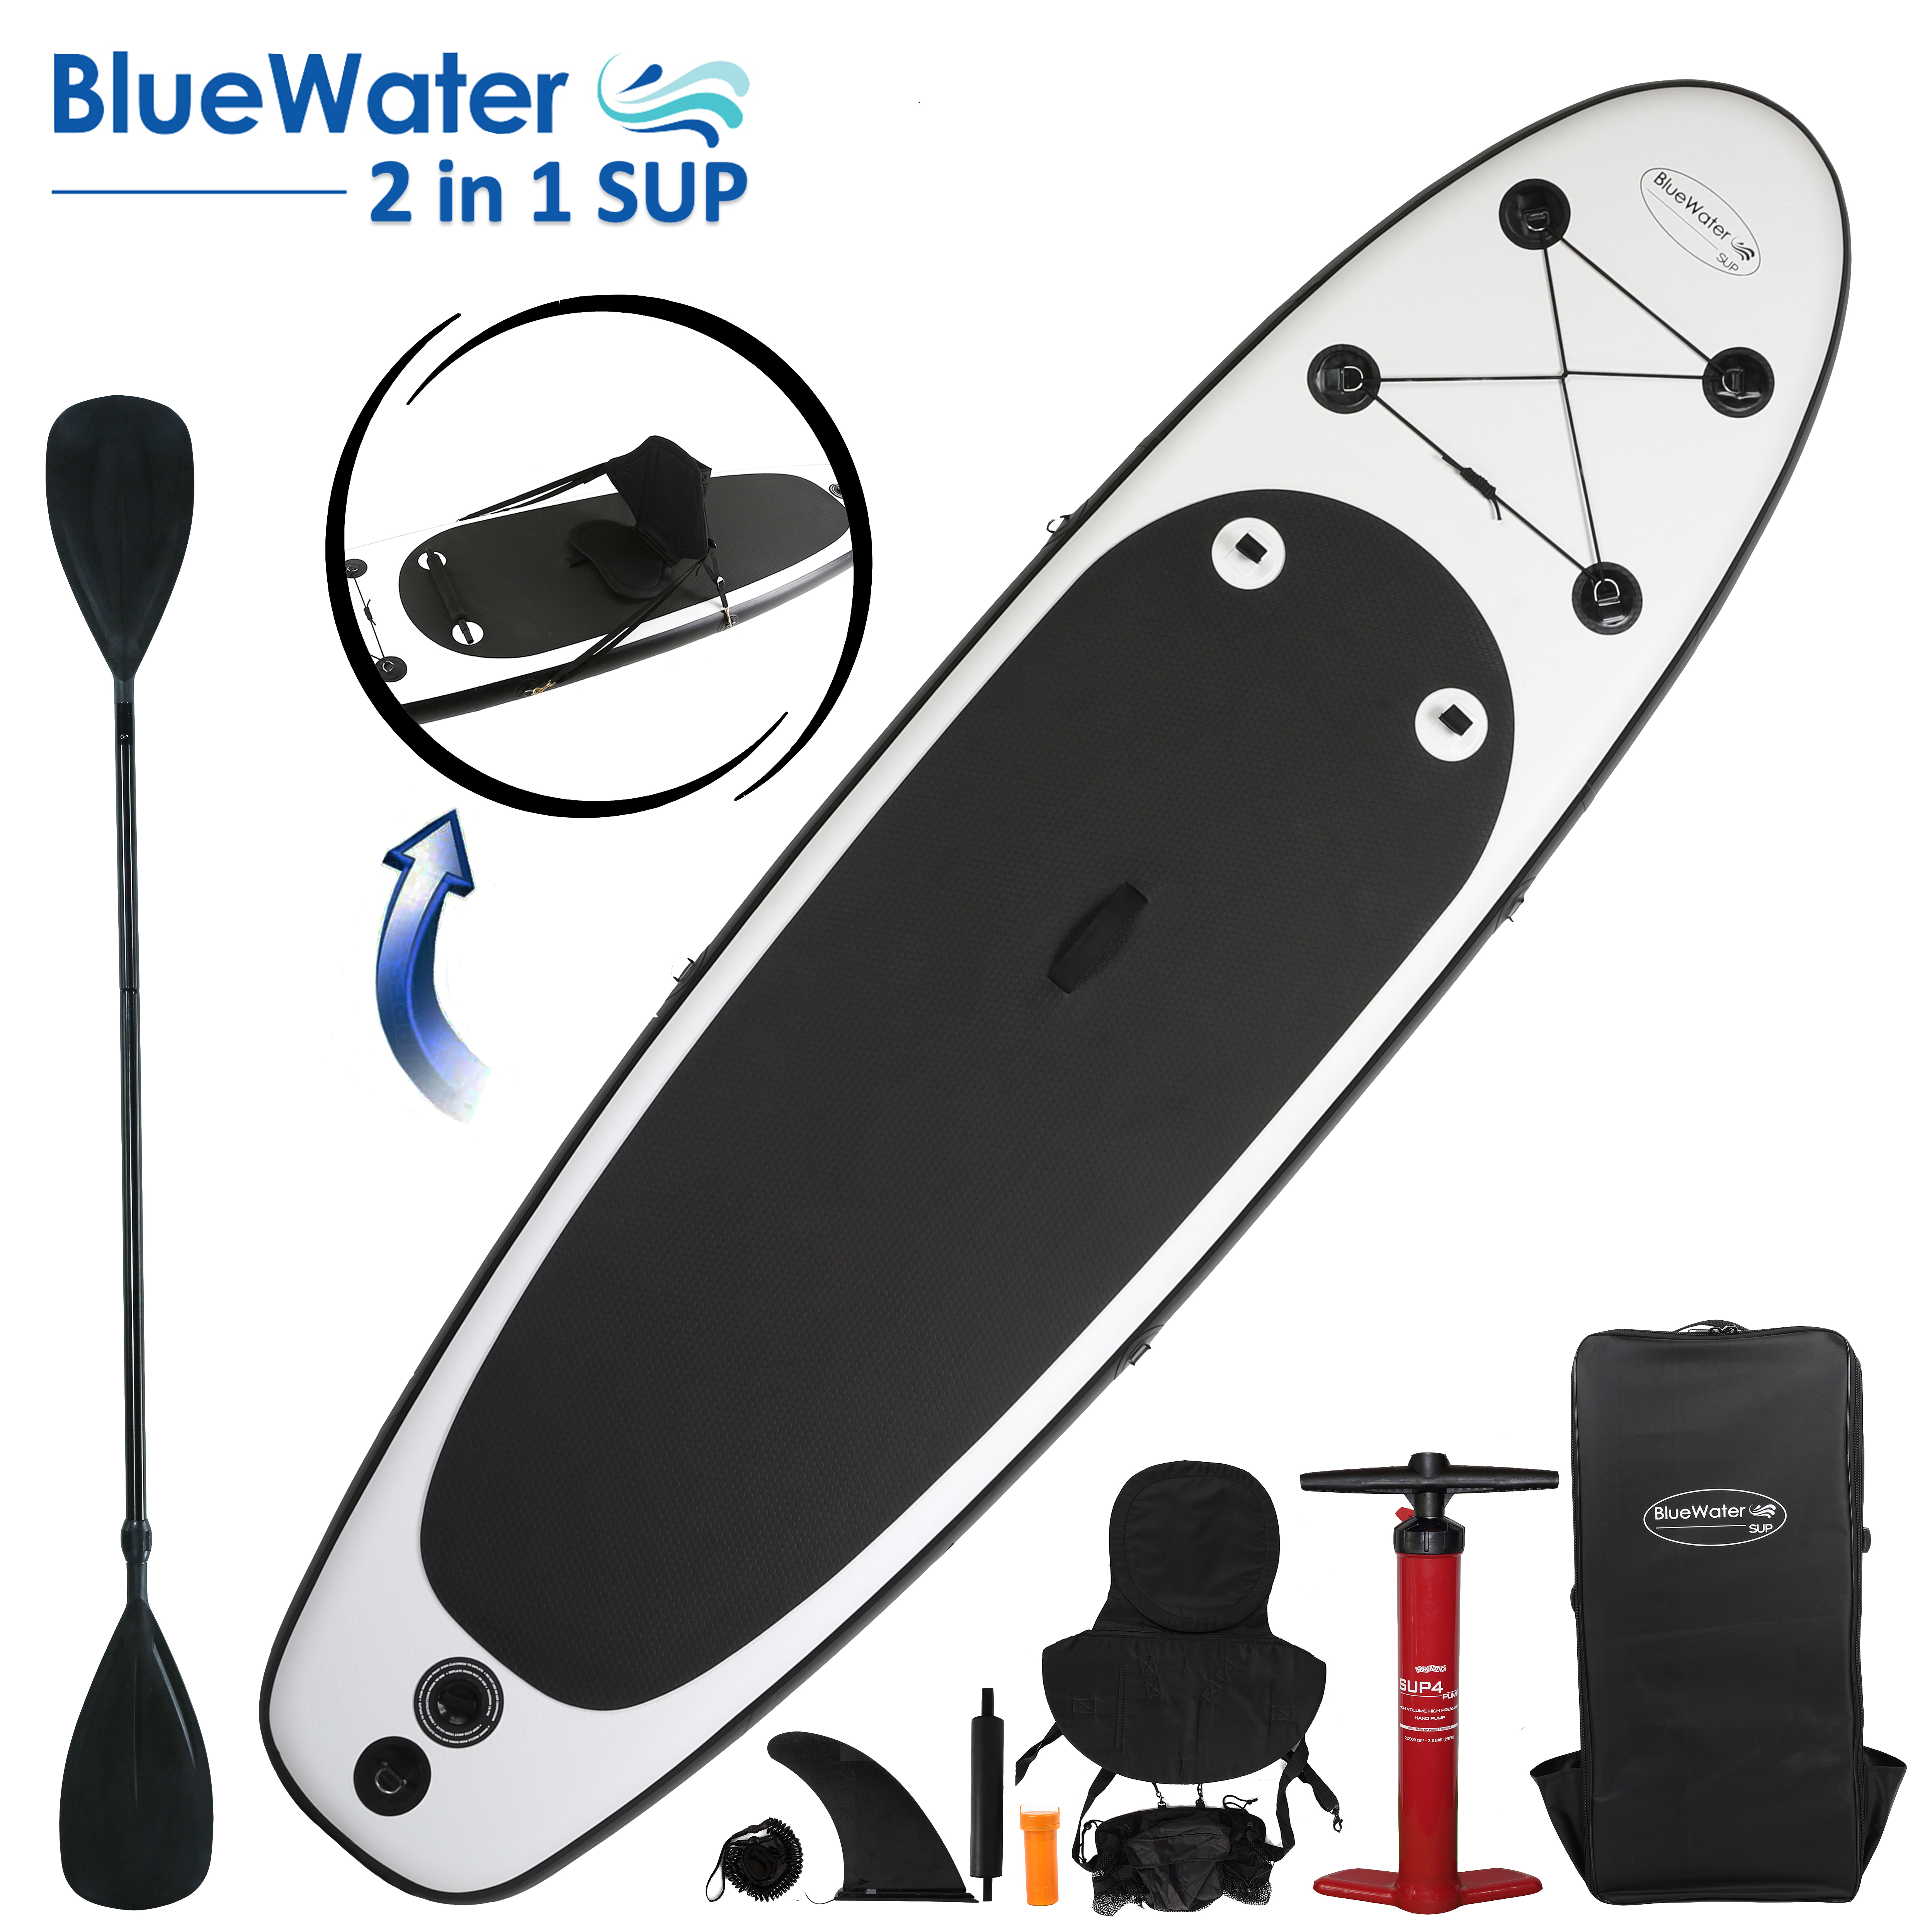 2 in 1 Inflatable Stand Up Paddleboard And Kayak